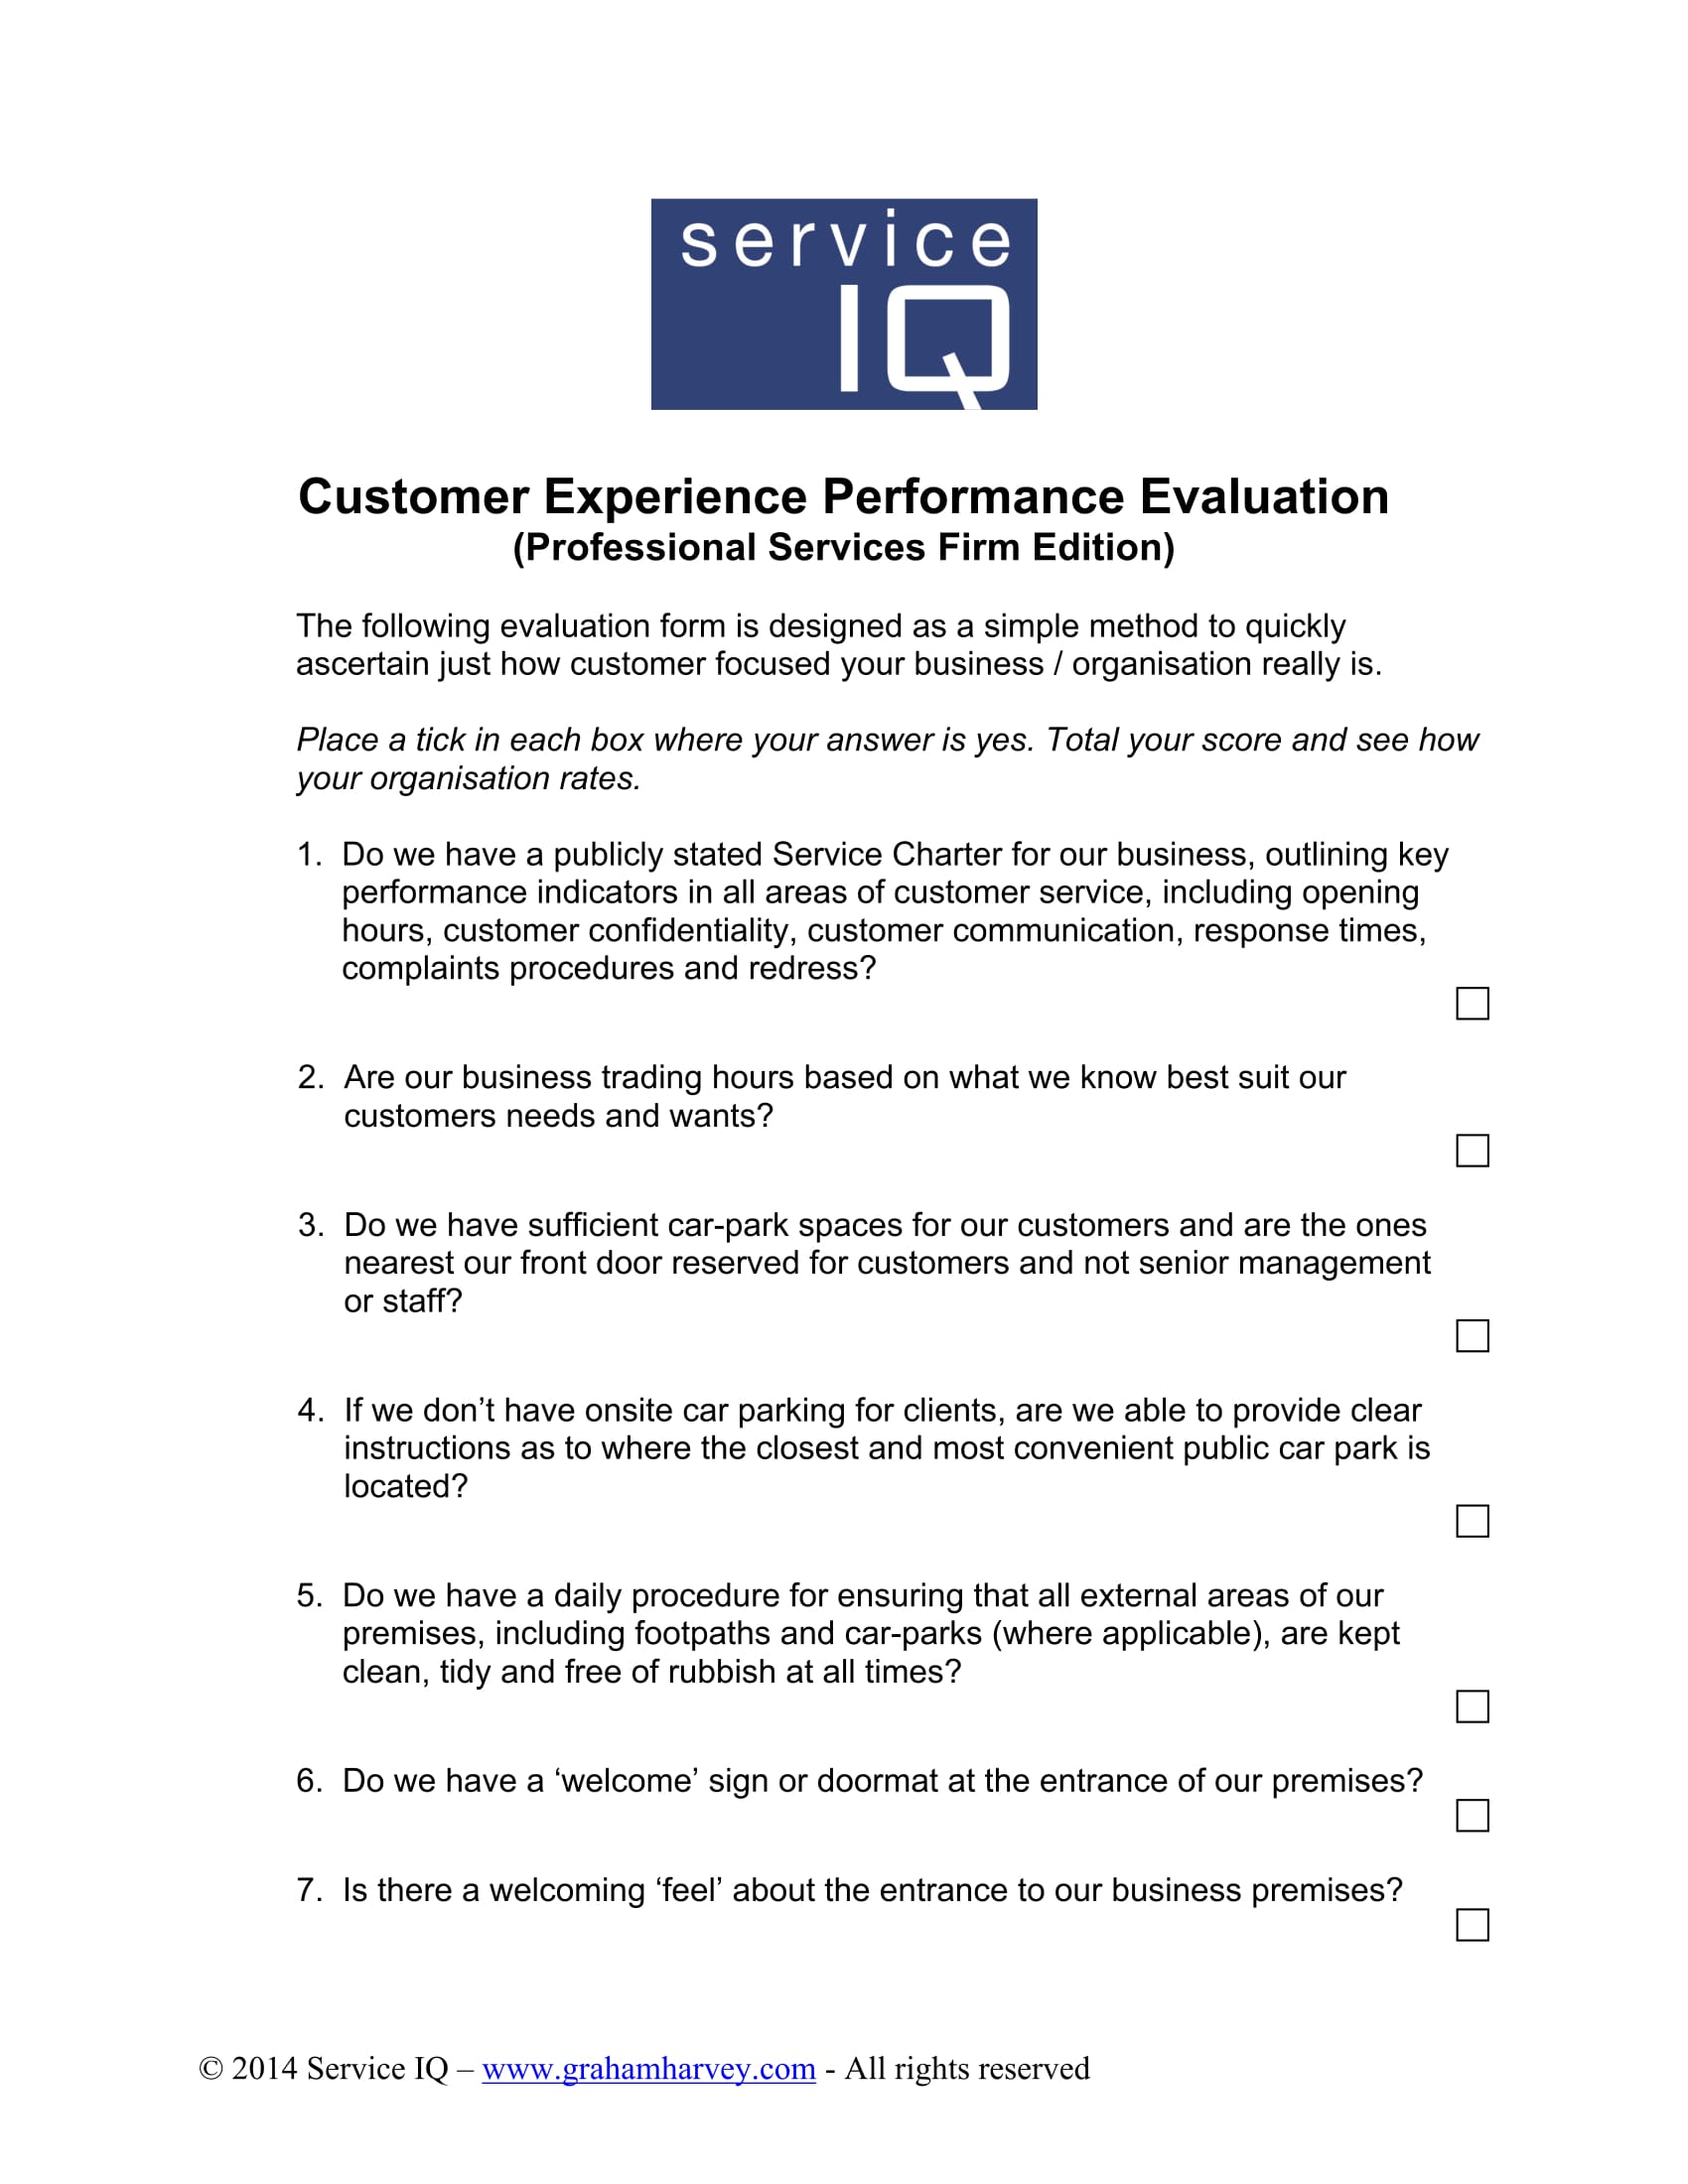 customer experience performance evaluation form 01